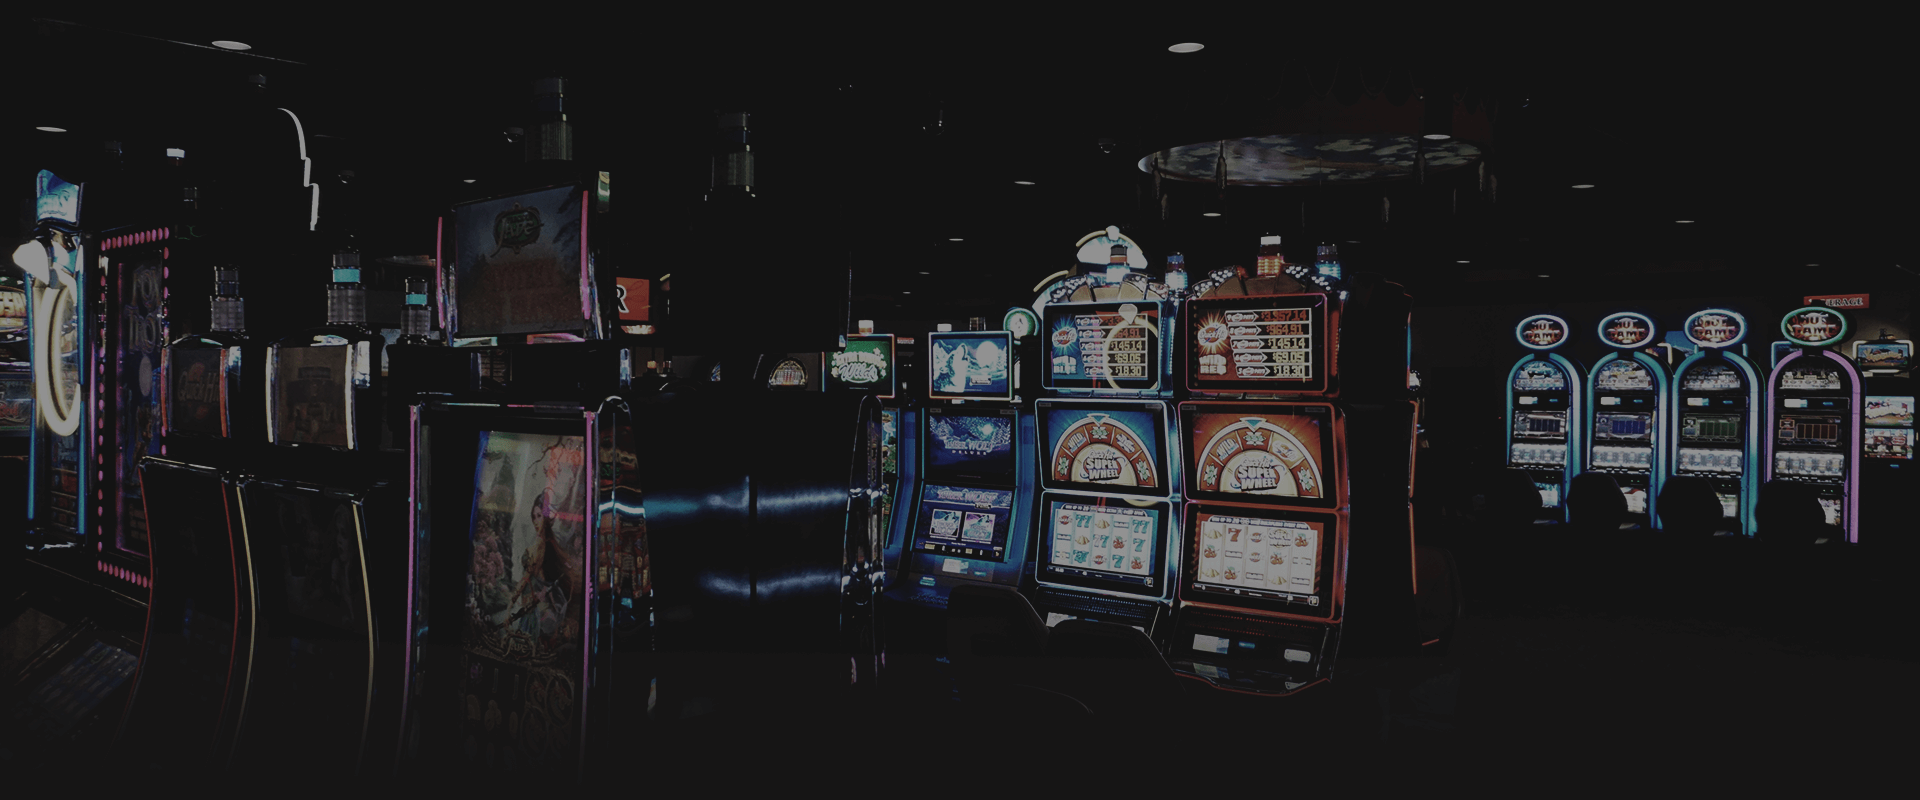 electronic games at Creek Nation Casino Holdenville